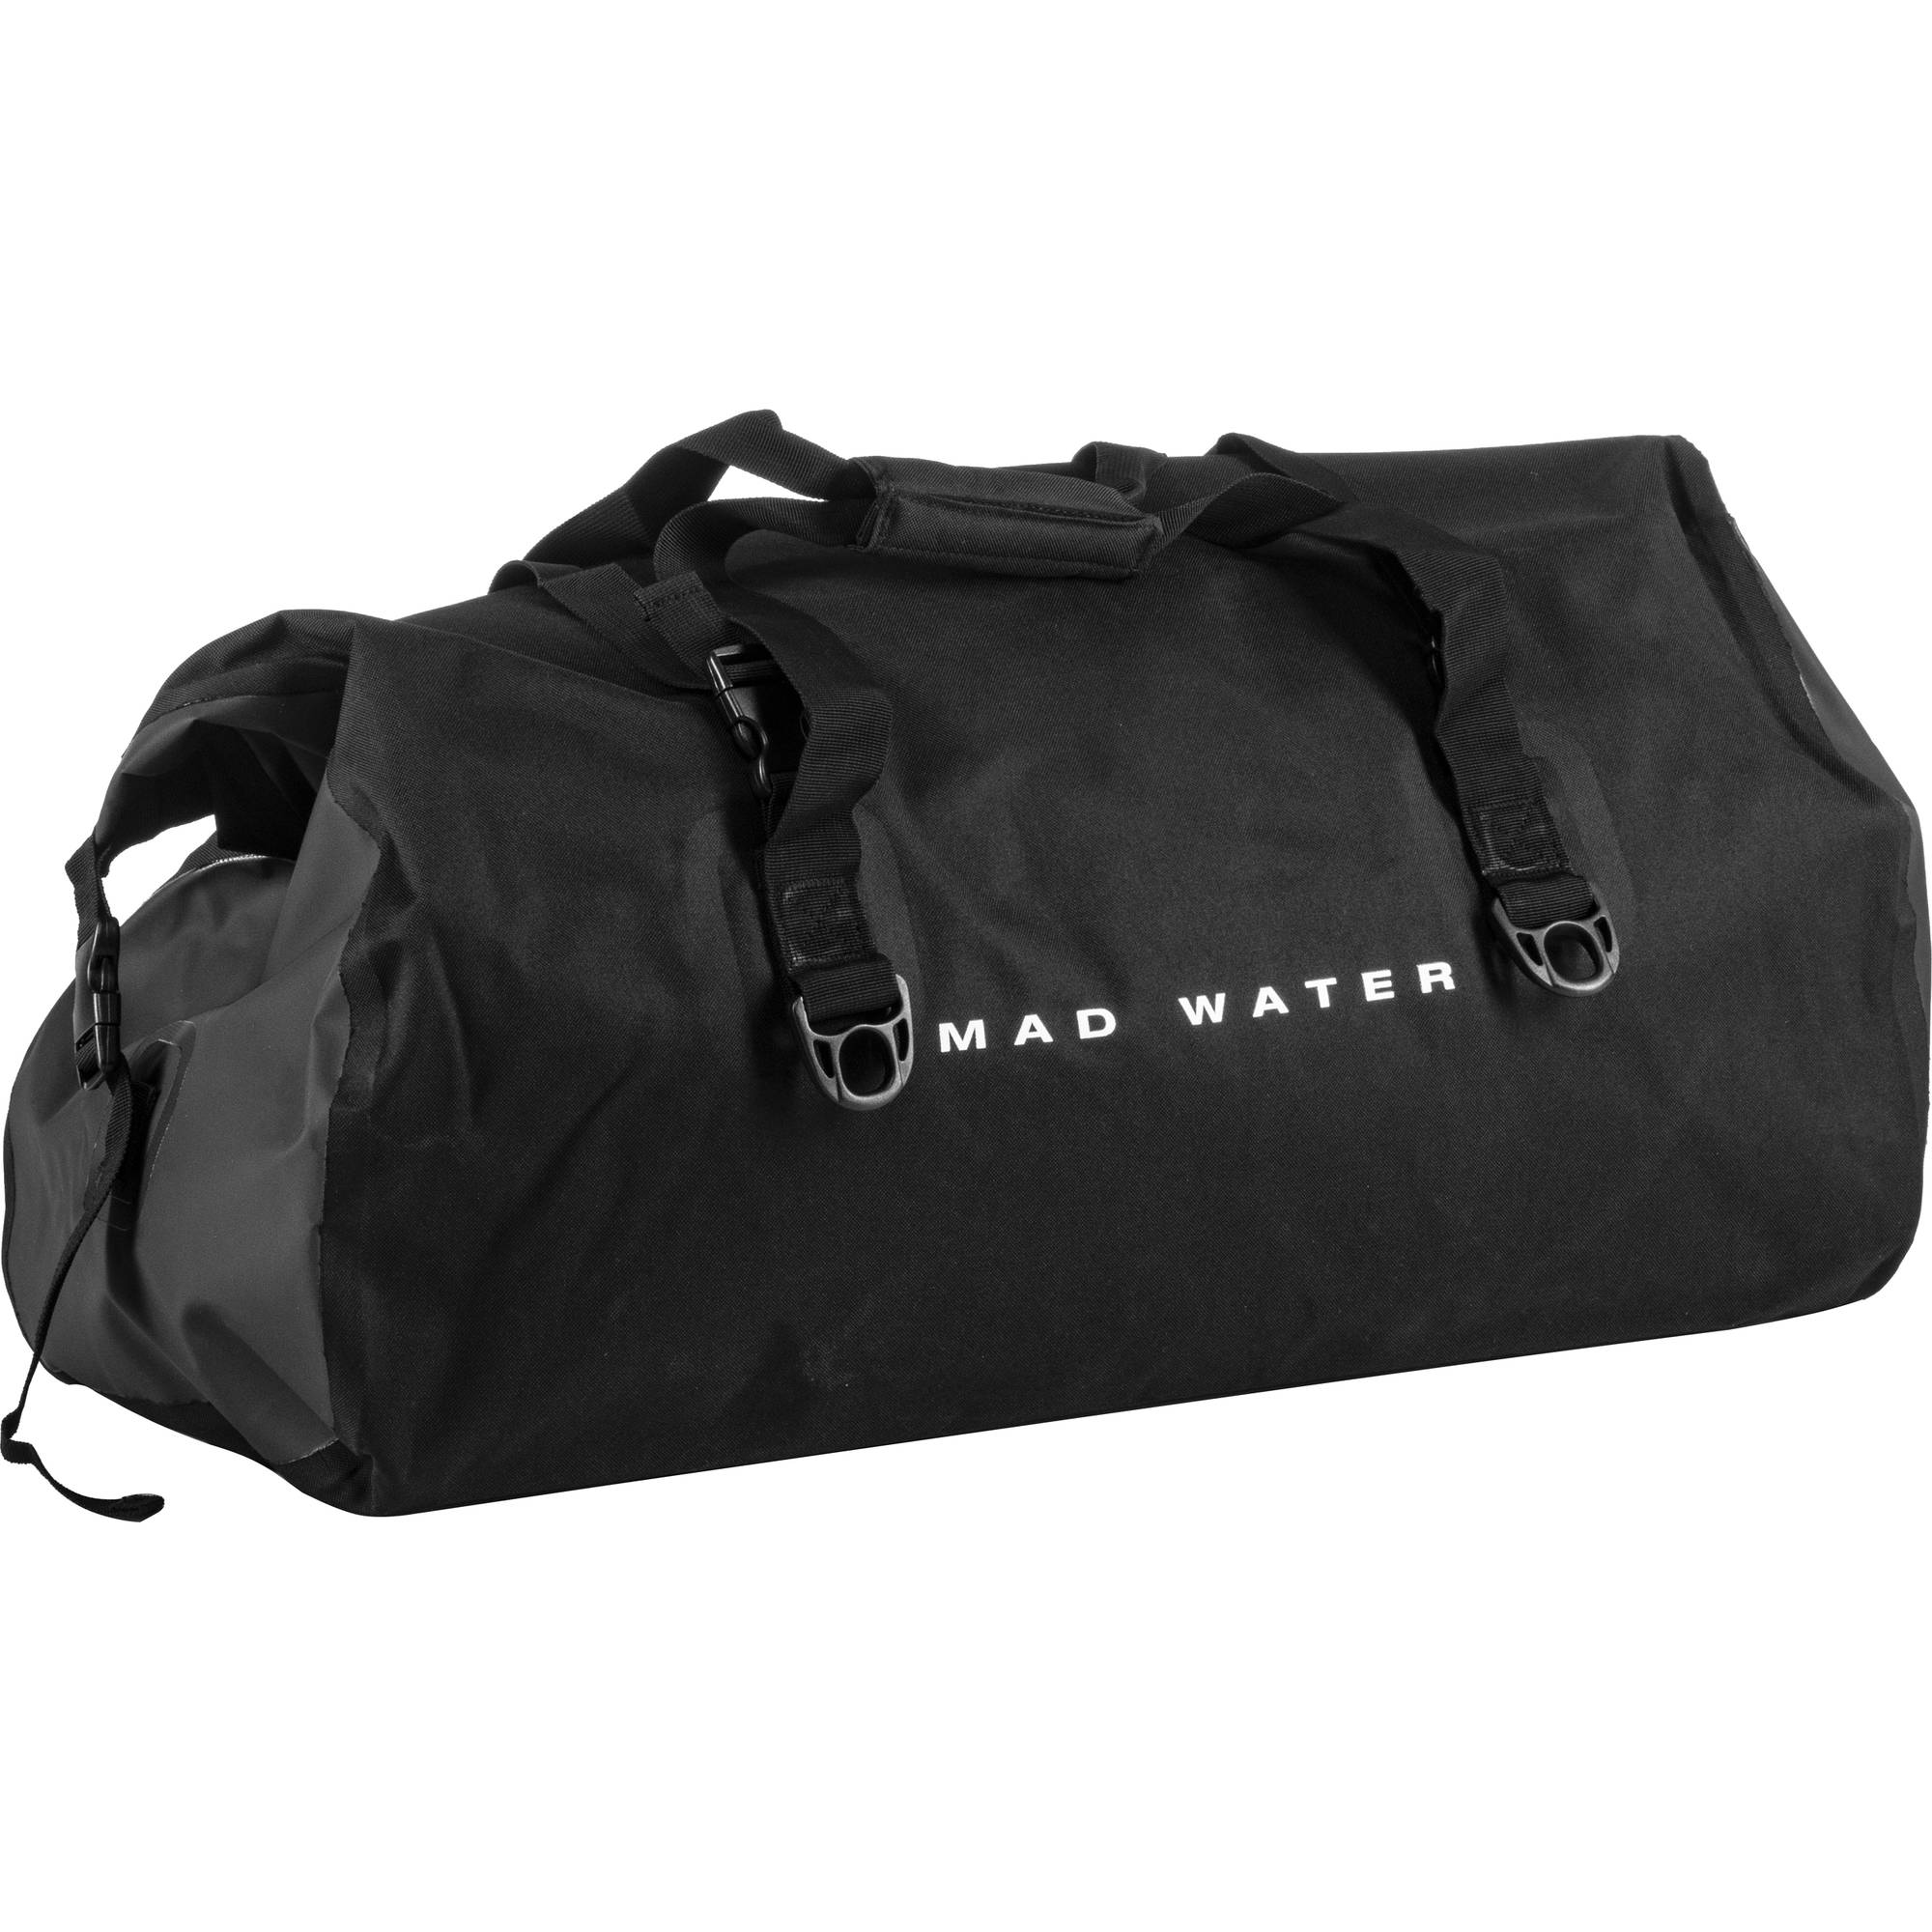 Mad Water Classic Roll Top Waterproof Duffel Bag M B&H